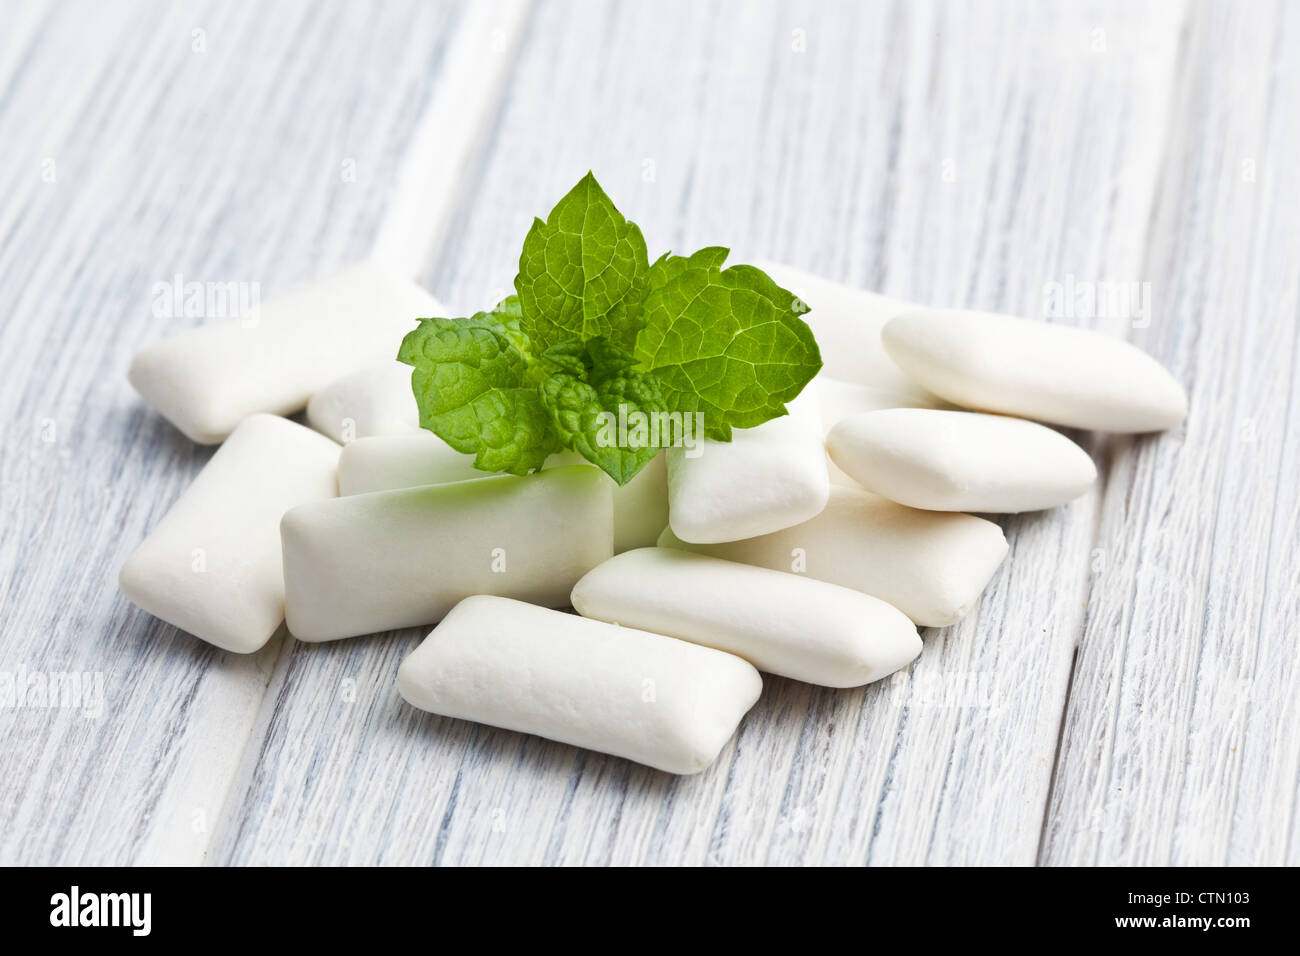 the mint leaves and the chewing gum - Stock Image